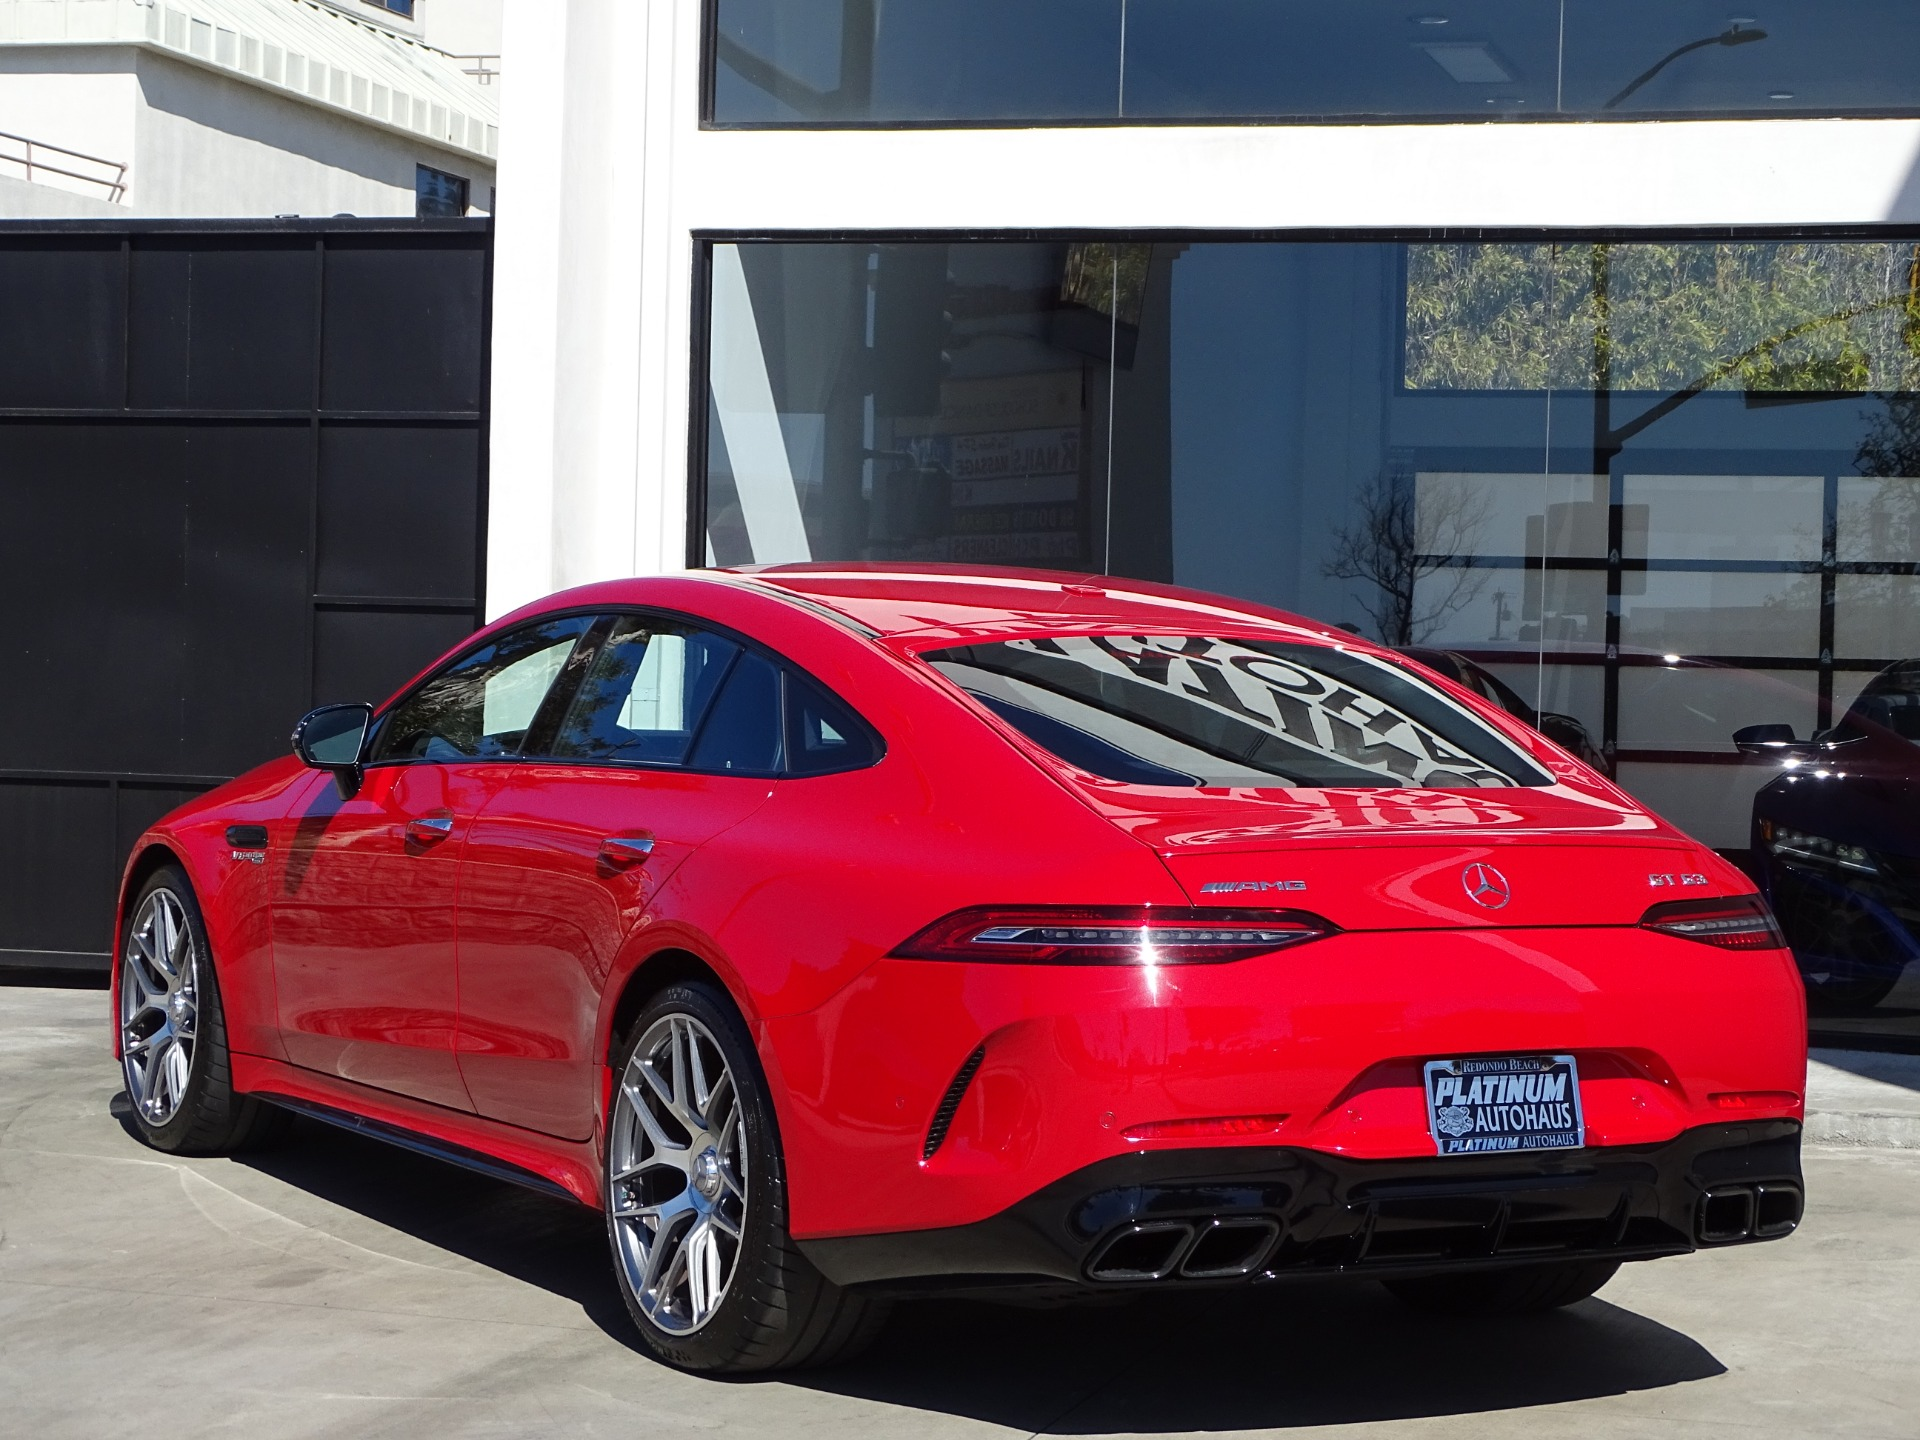 Used-2019-Mercedes-Benz-AMG-GT-63